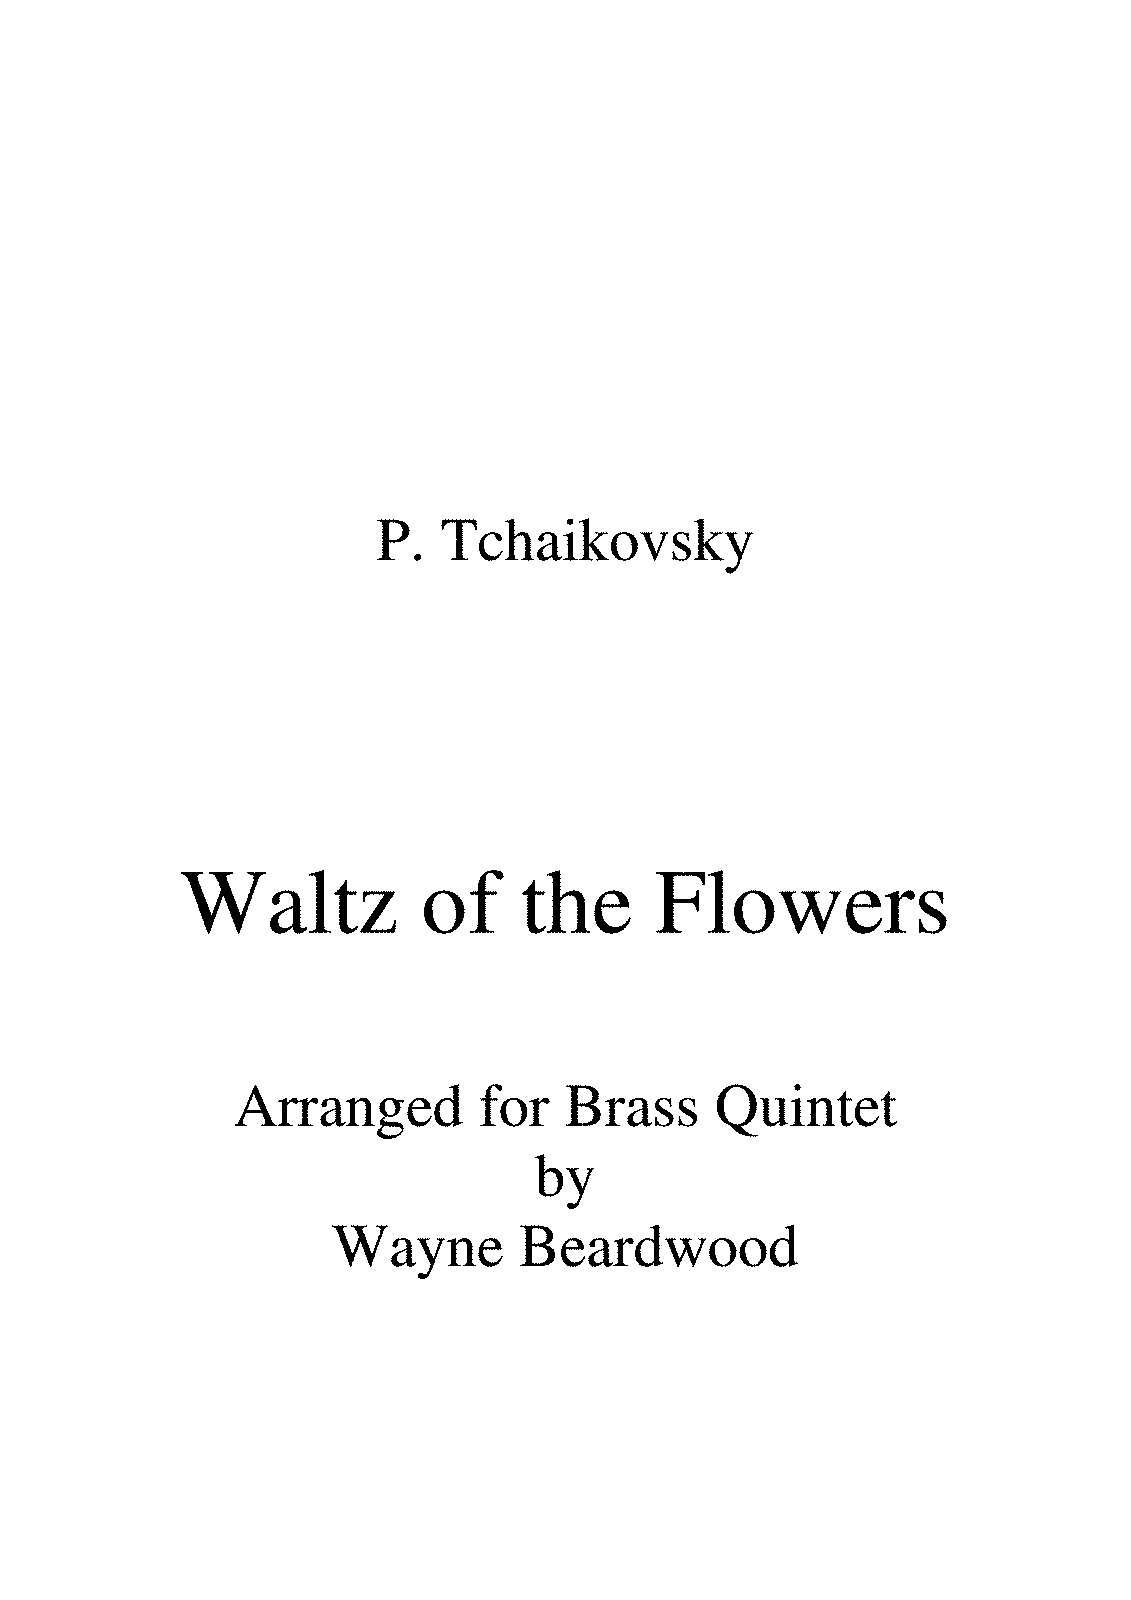 PMLP03607-Waltz of the Flowers Score.pdf